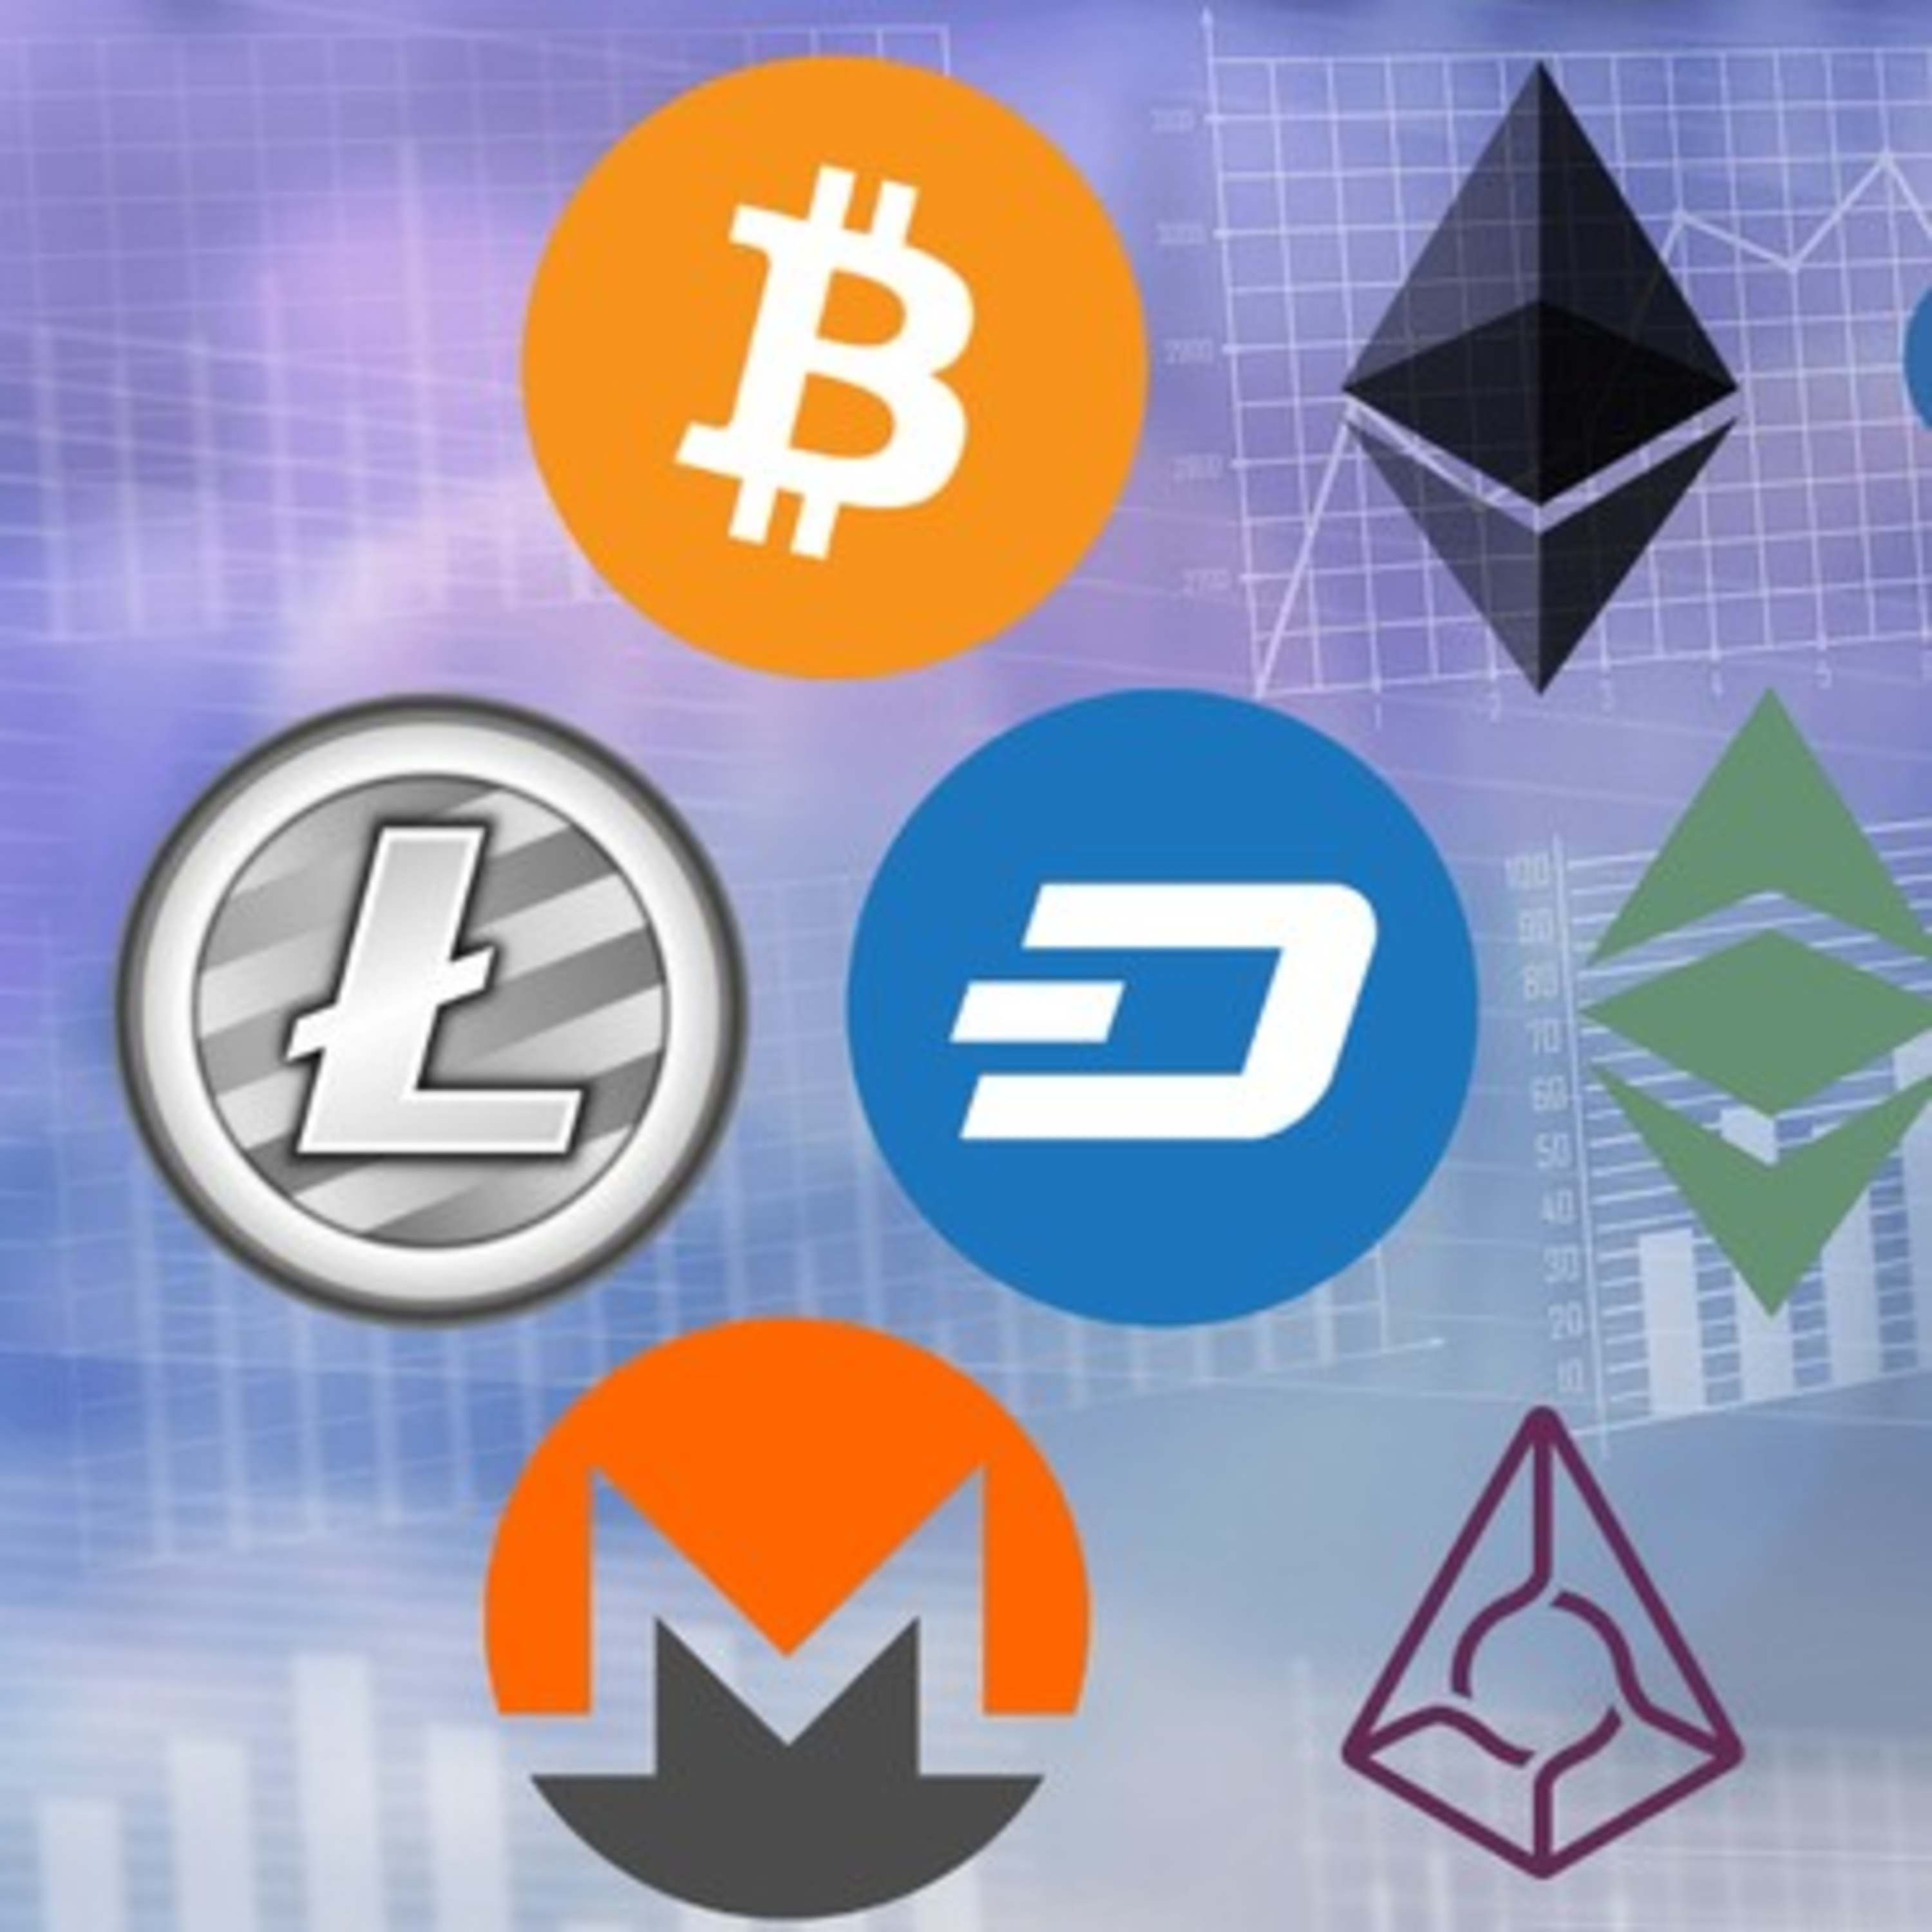 The top 10 Cryptocurrencies, their uses and per coin price.